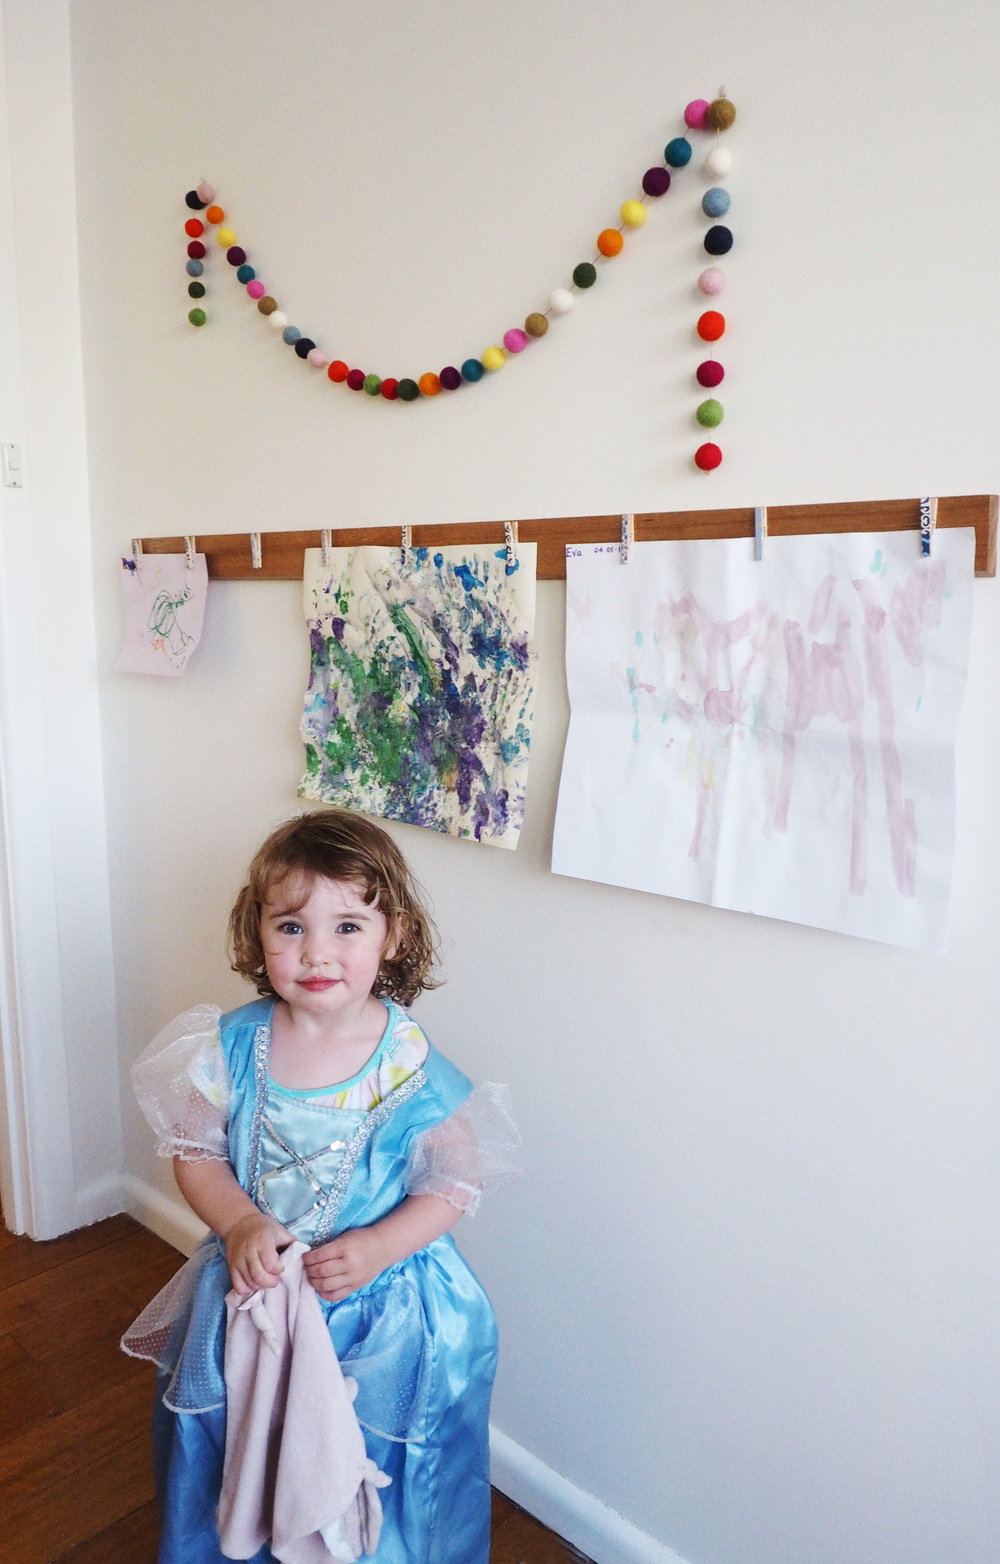 Baby girl loving her bedroom art wall display!